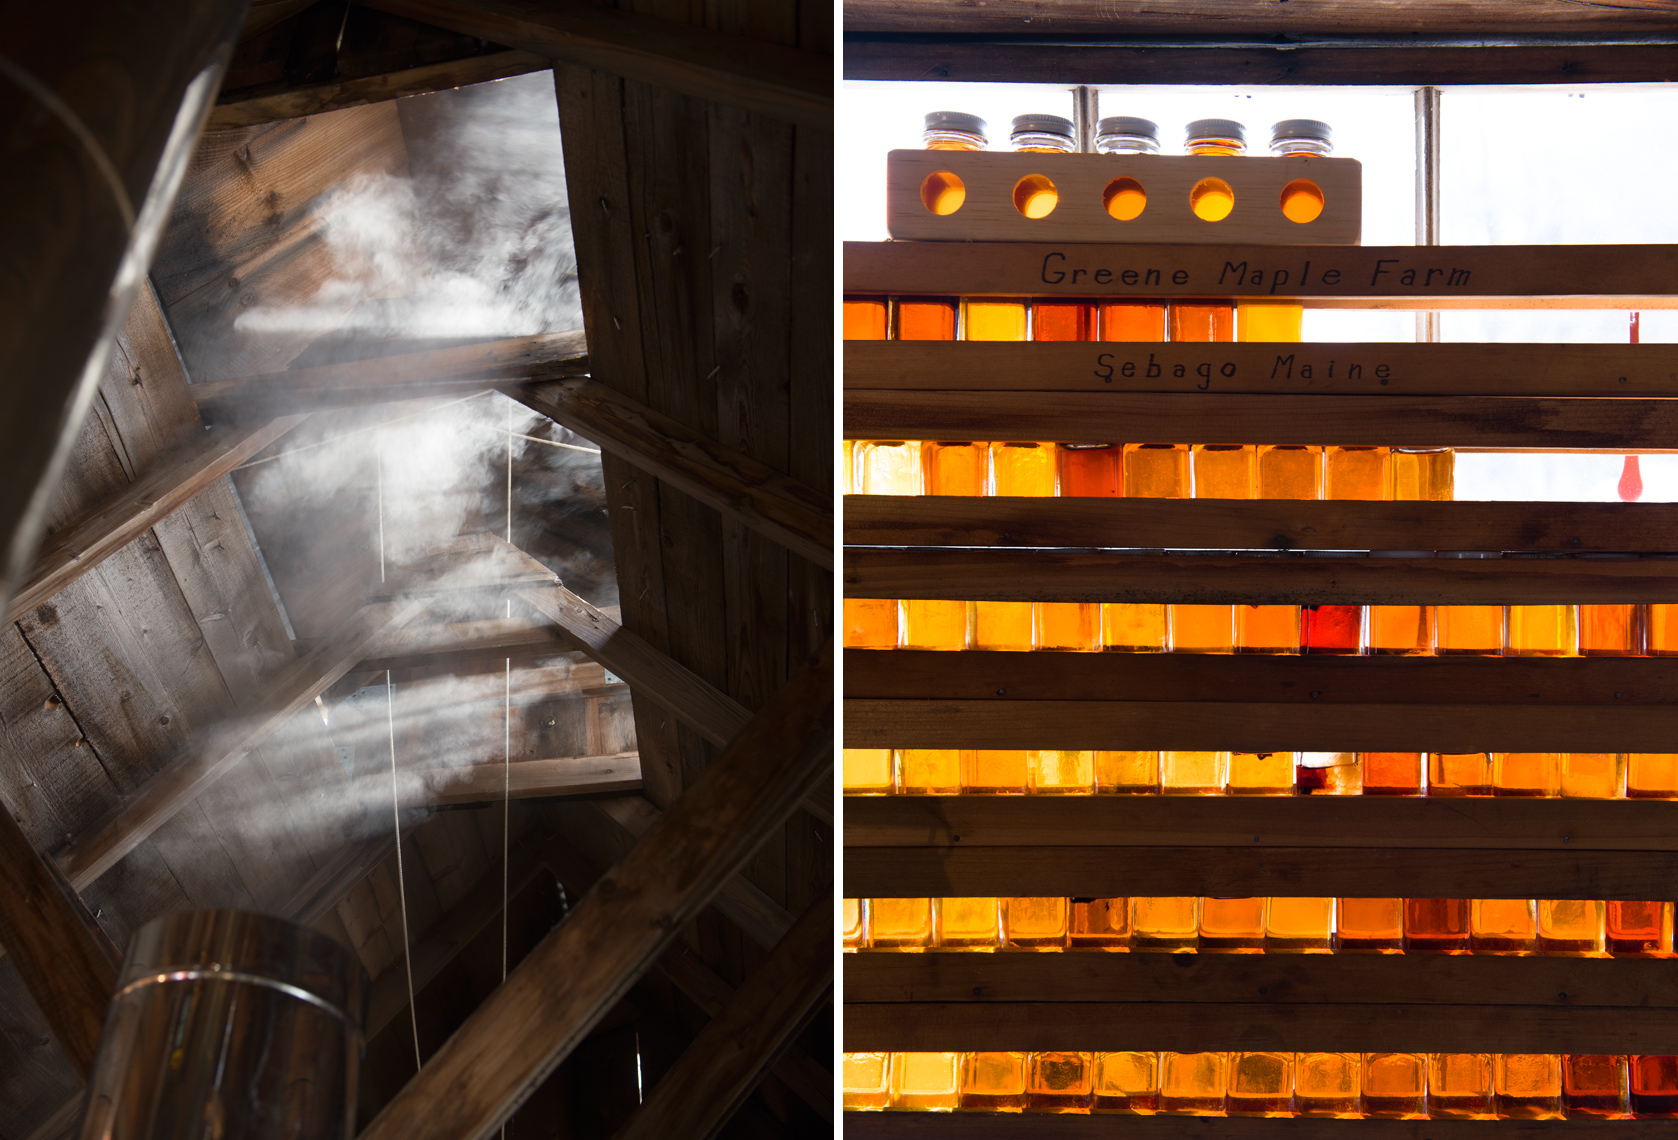 maple syrup evaporator and grading